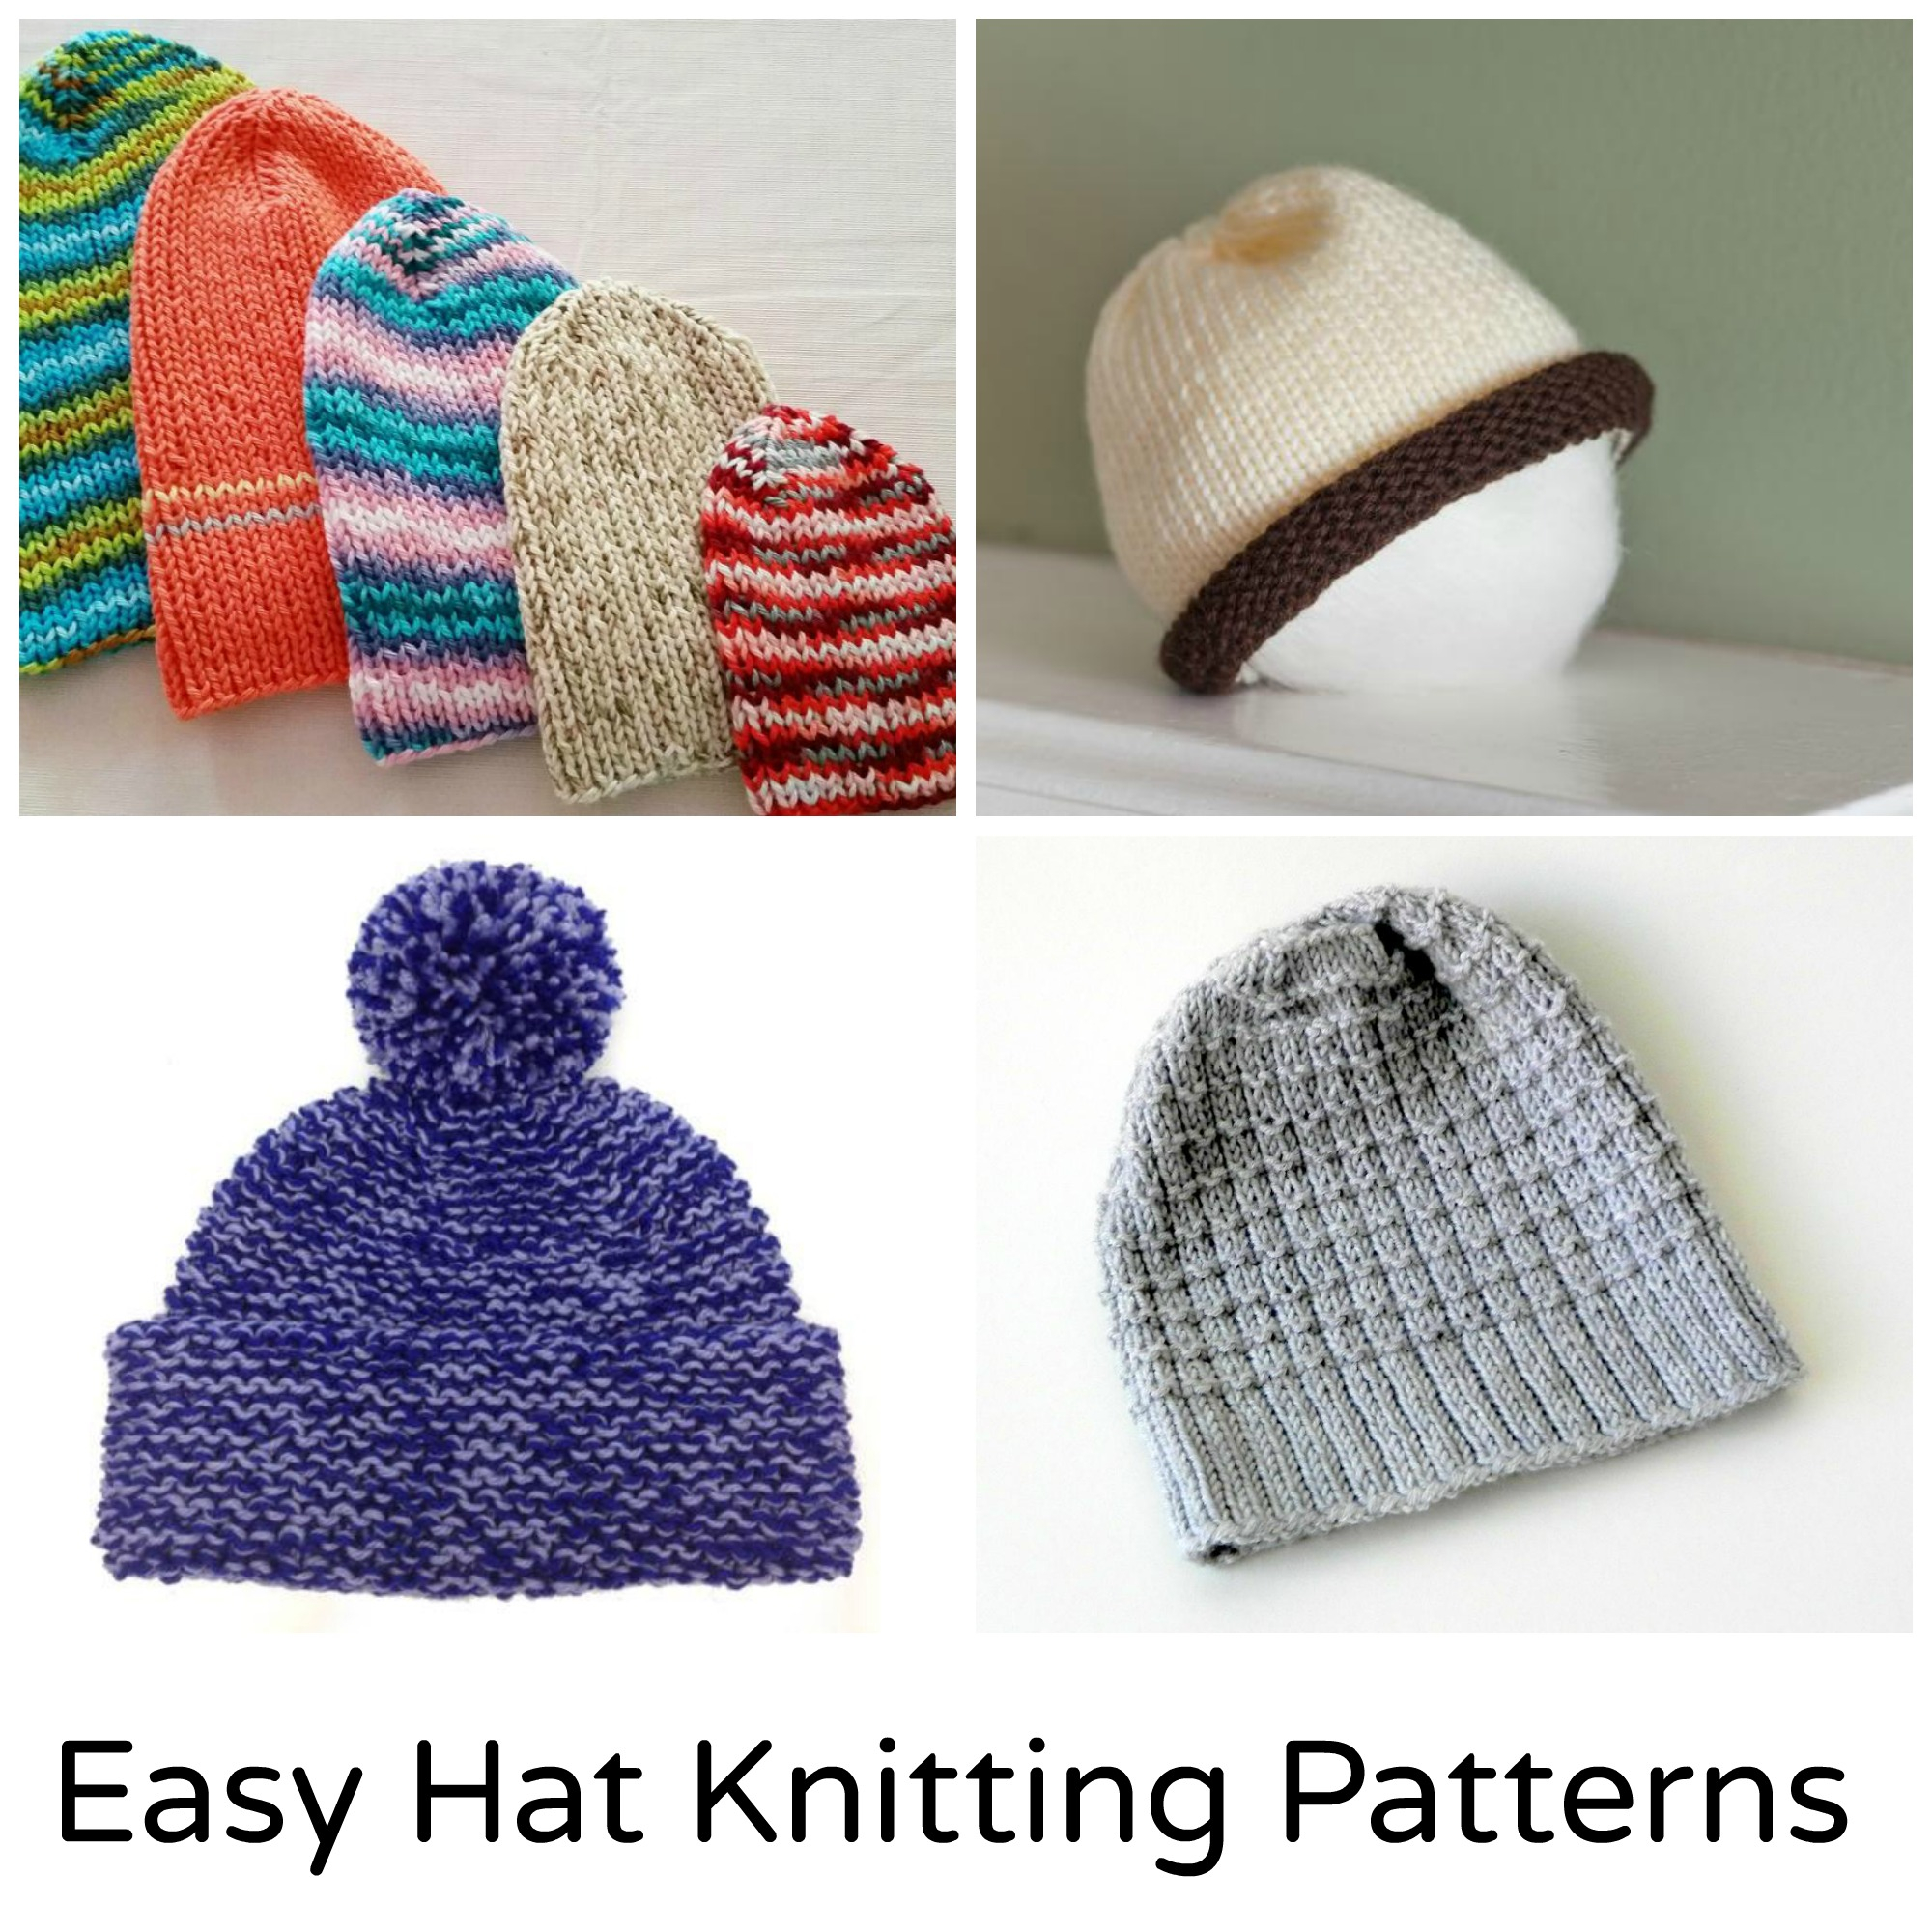 Bobble Hat Knitting Pattern Free Easy Knitting Patterns For Hats Free